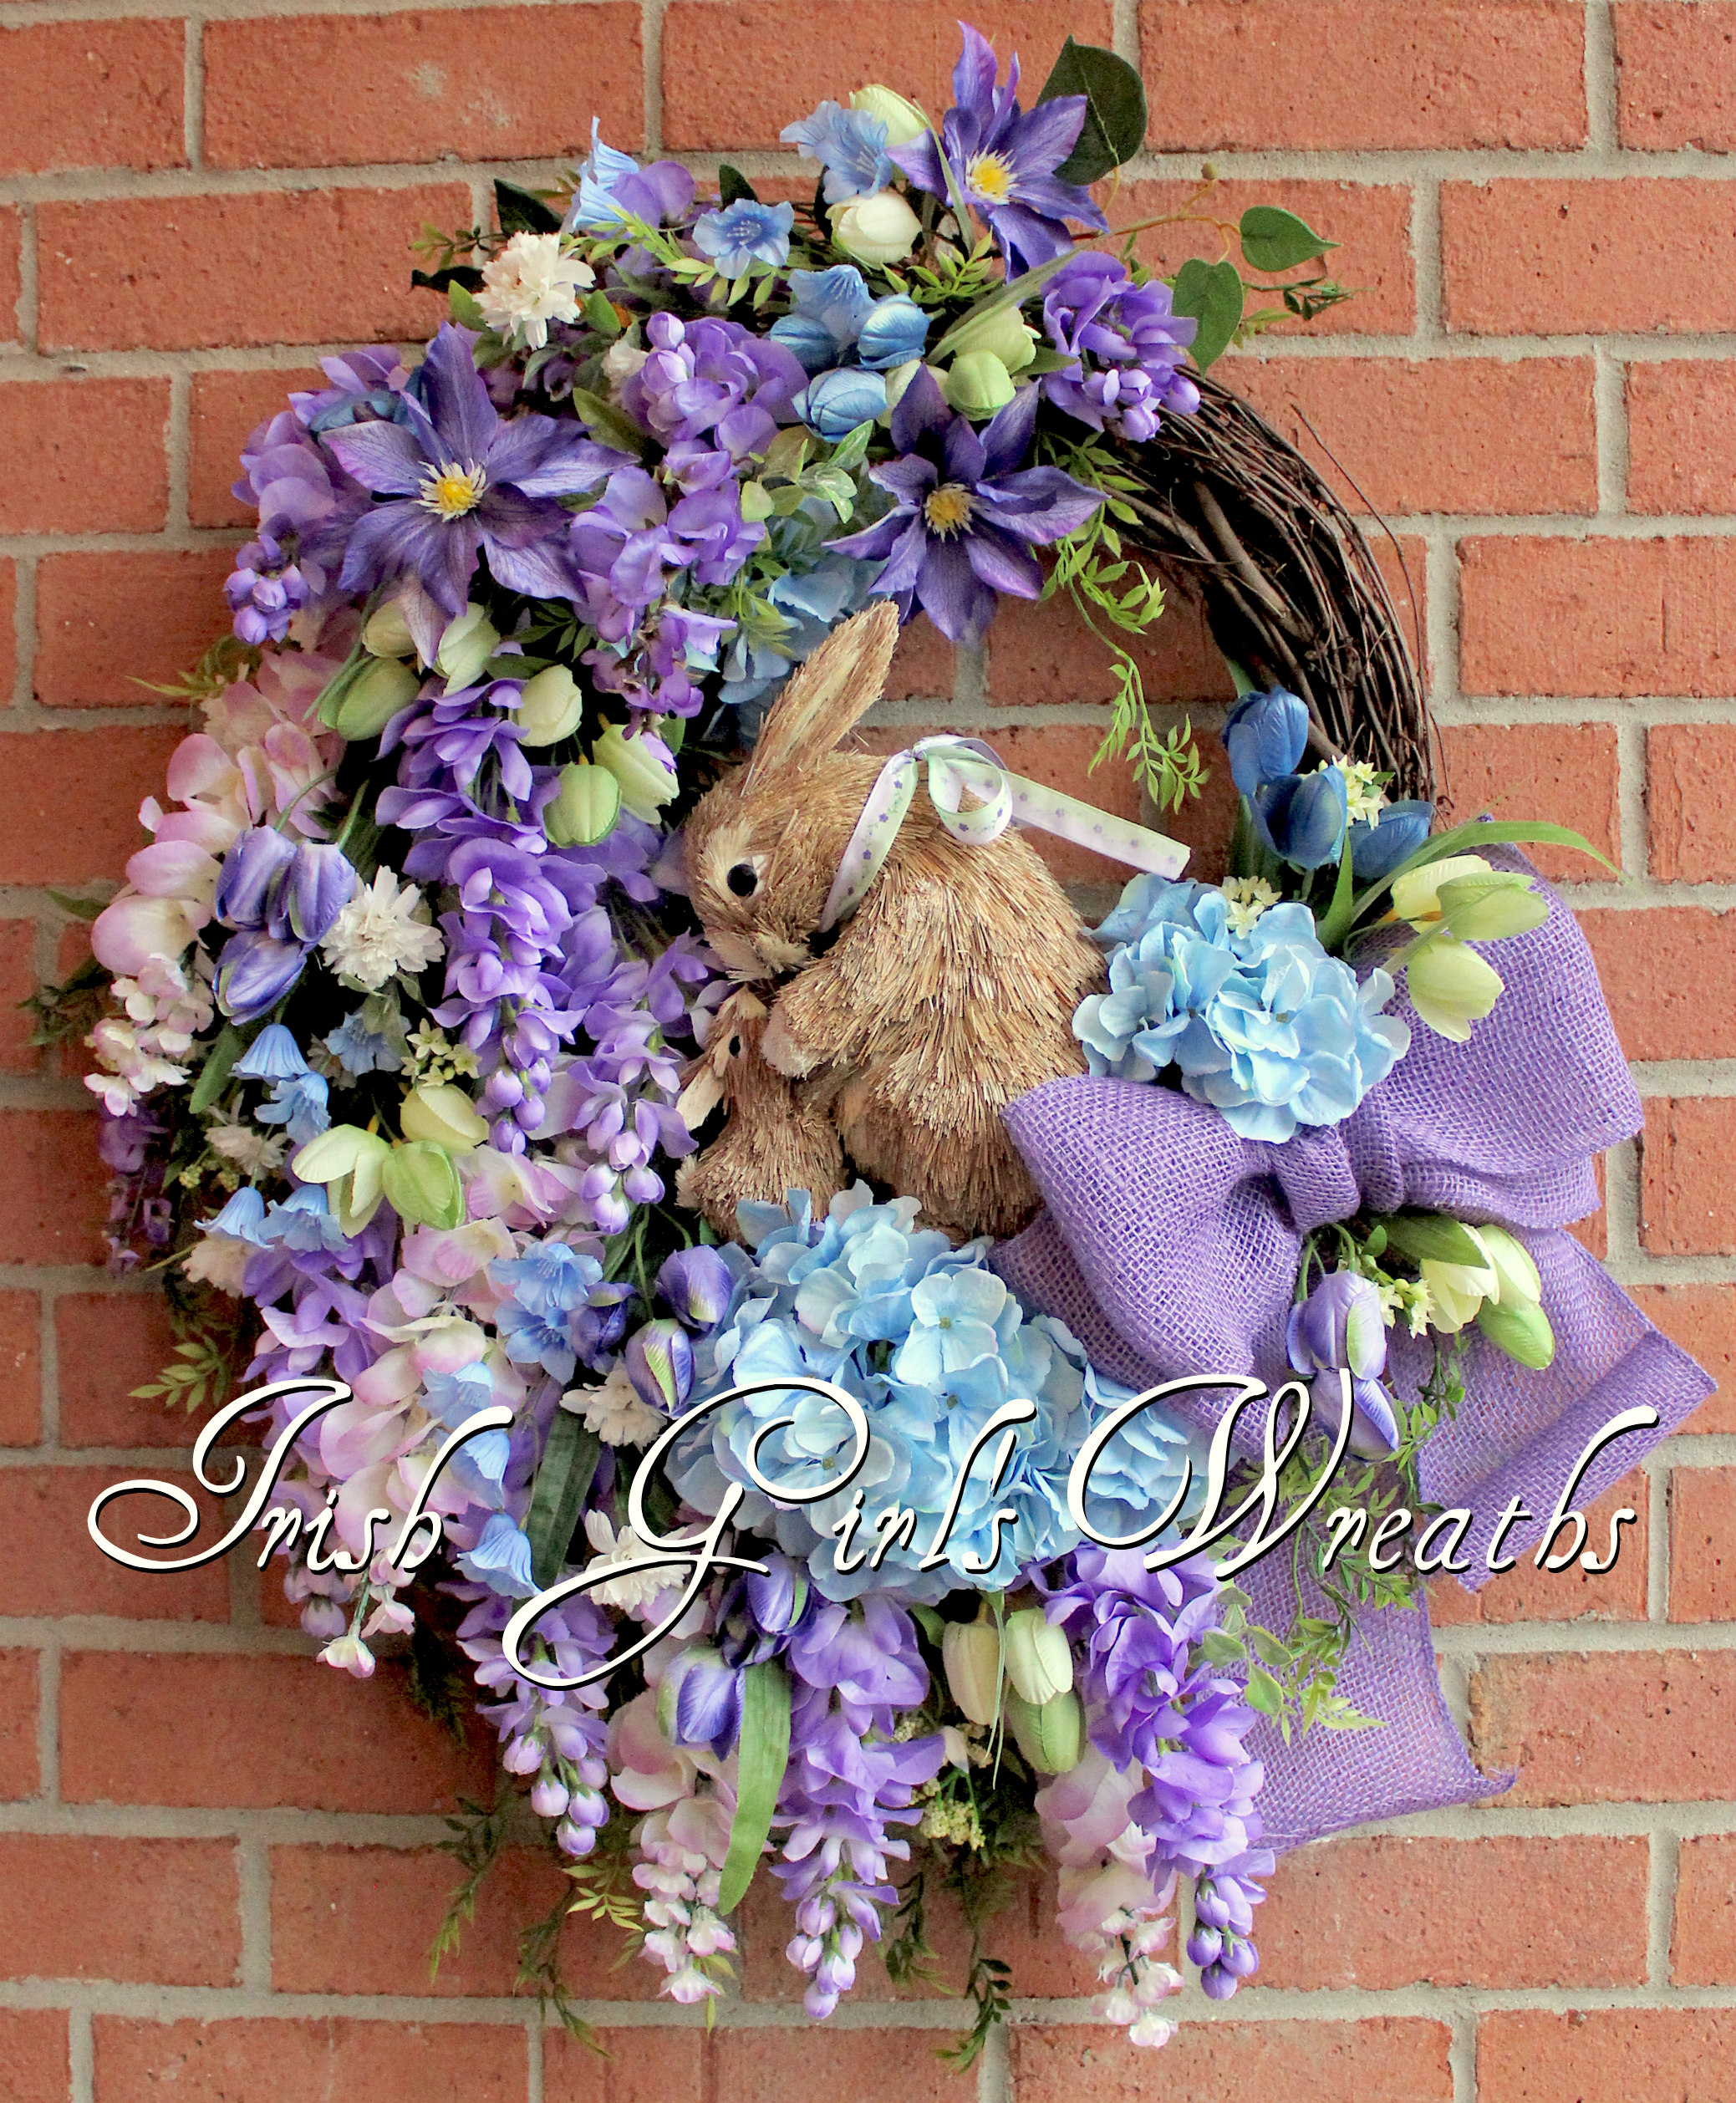 Spring Purple & Blue Wisteria Bunny Rabbit Wreath, Easter Floral Wreath